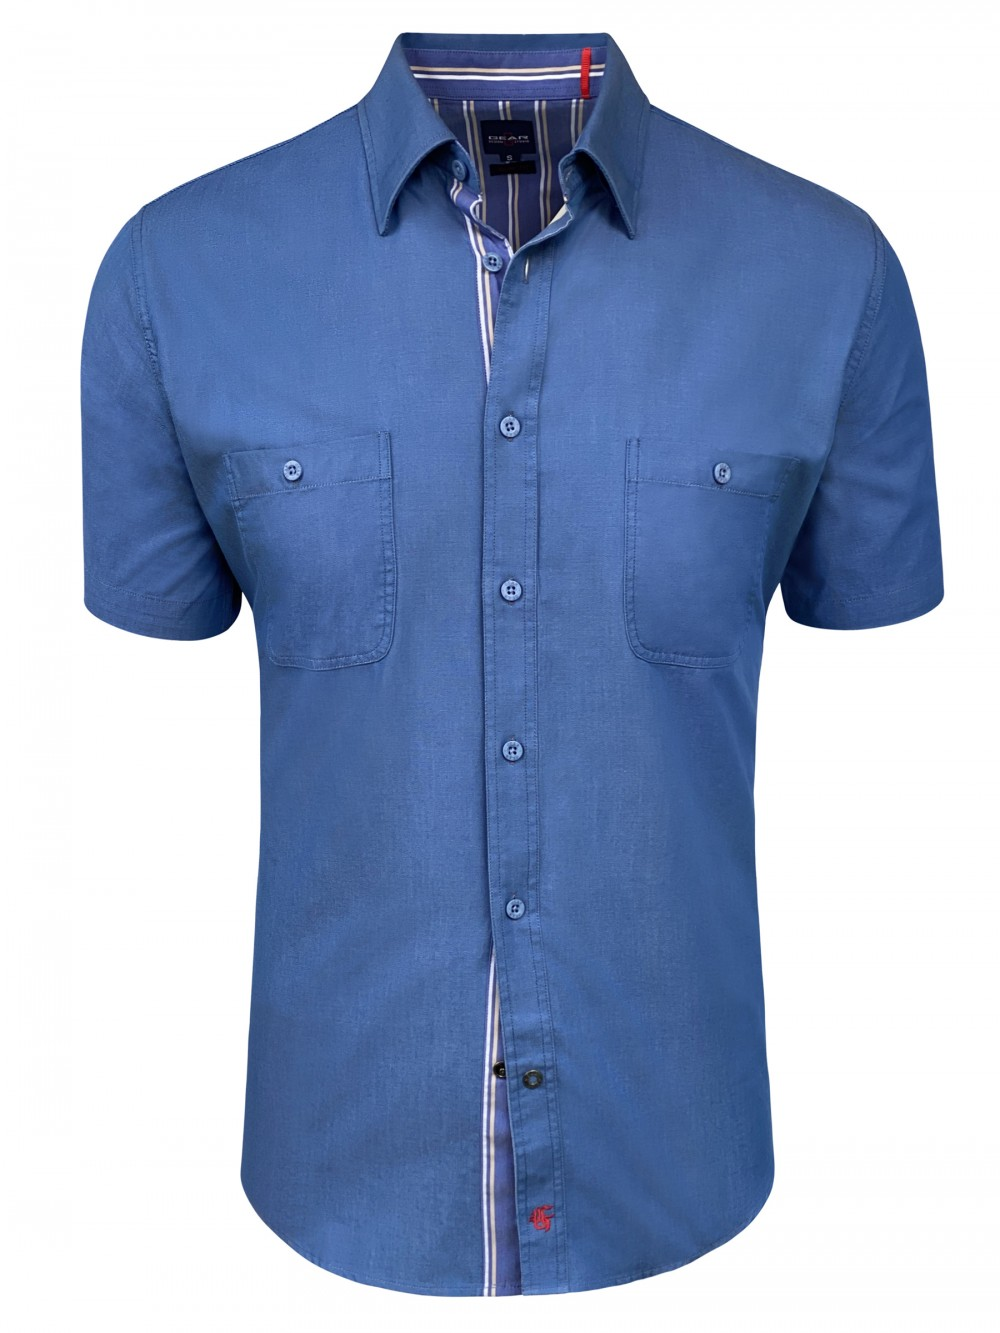 Mens Slim fit Shirt GIUSEPPE SHM1301 blue